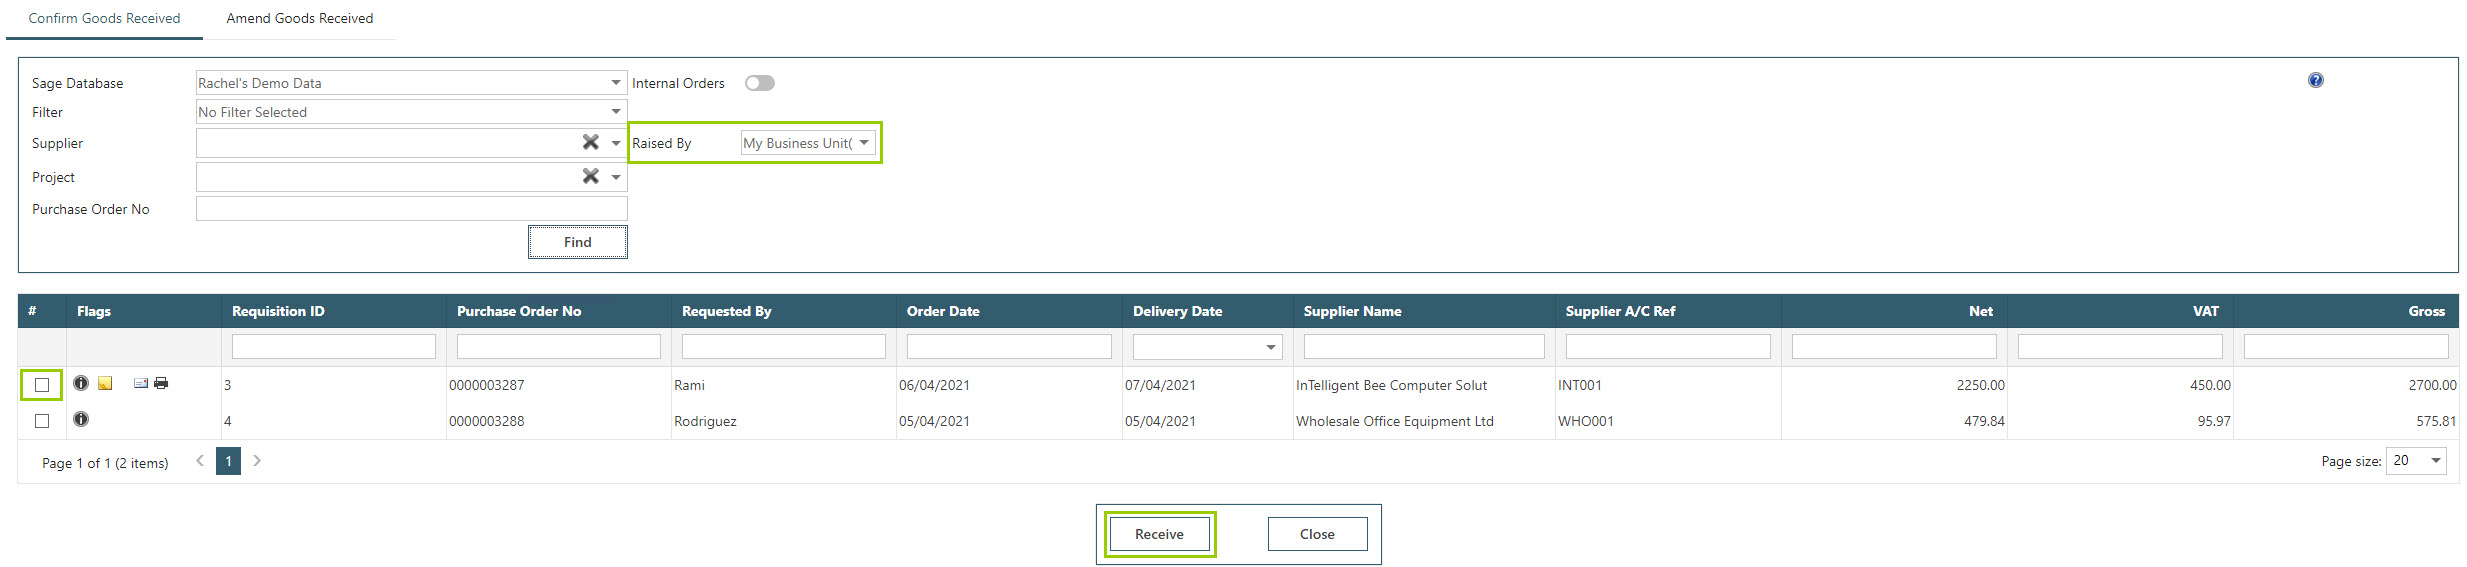 Sicon WAP Purchase Requisitions Help and User Guide - Requisition HUG Section 10 Image 1